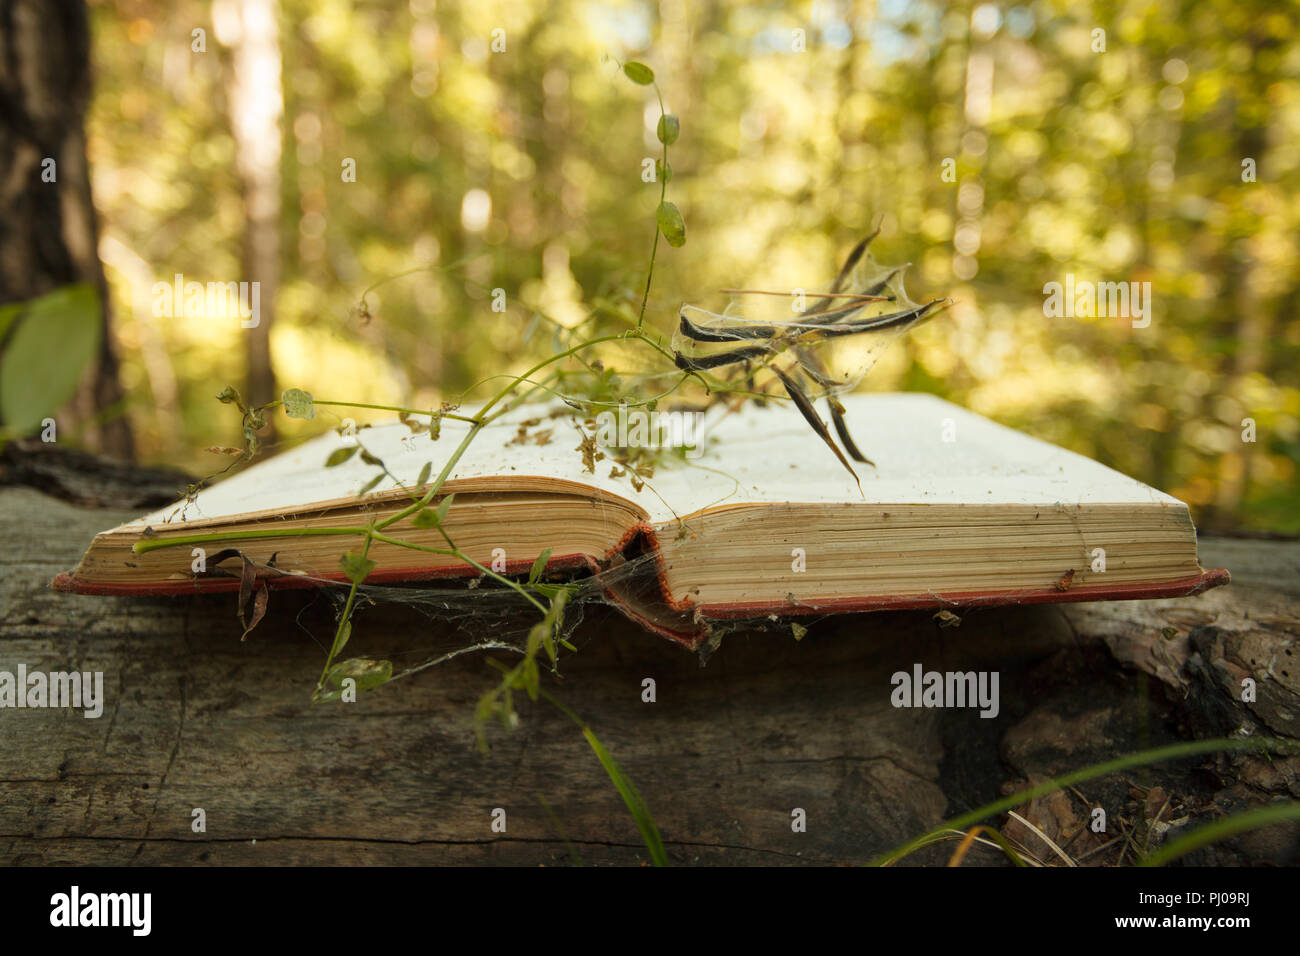 Open book on wooden background with magic mystery plant bokeh effect in the background - Stock Image